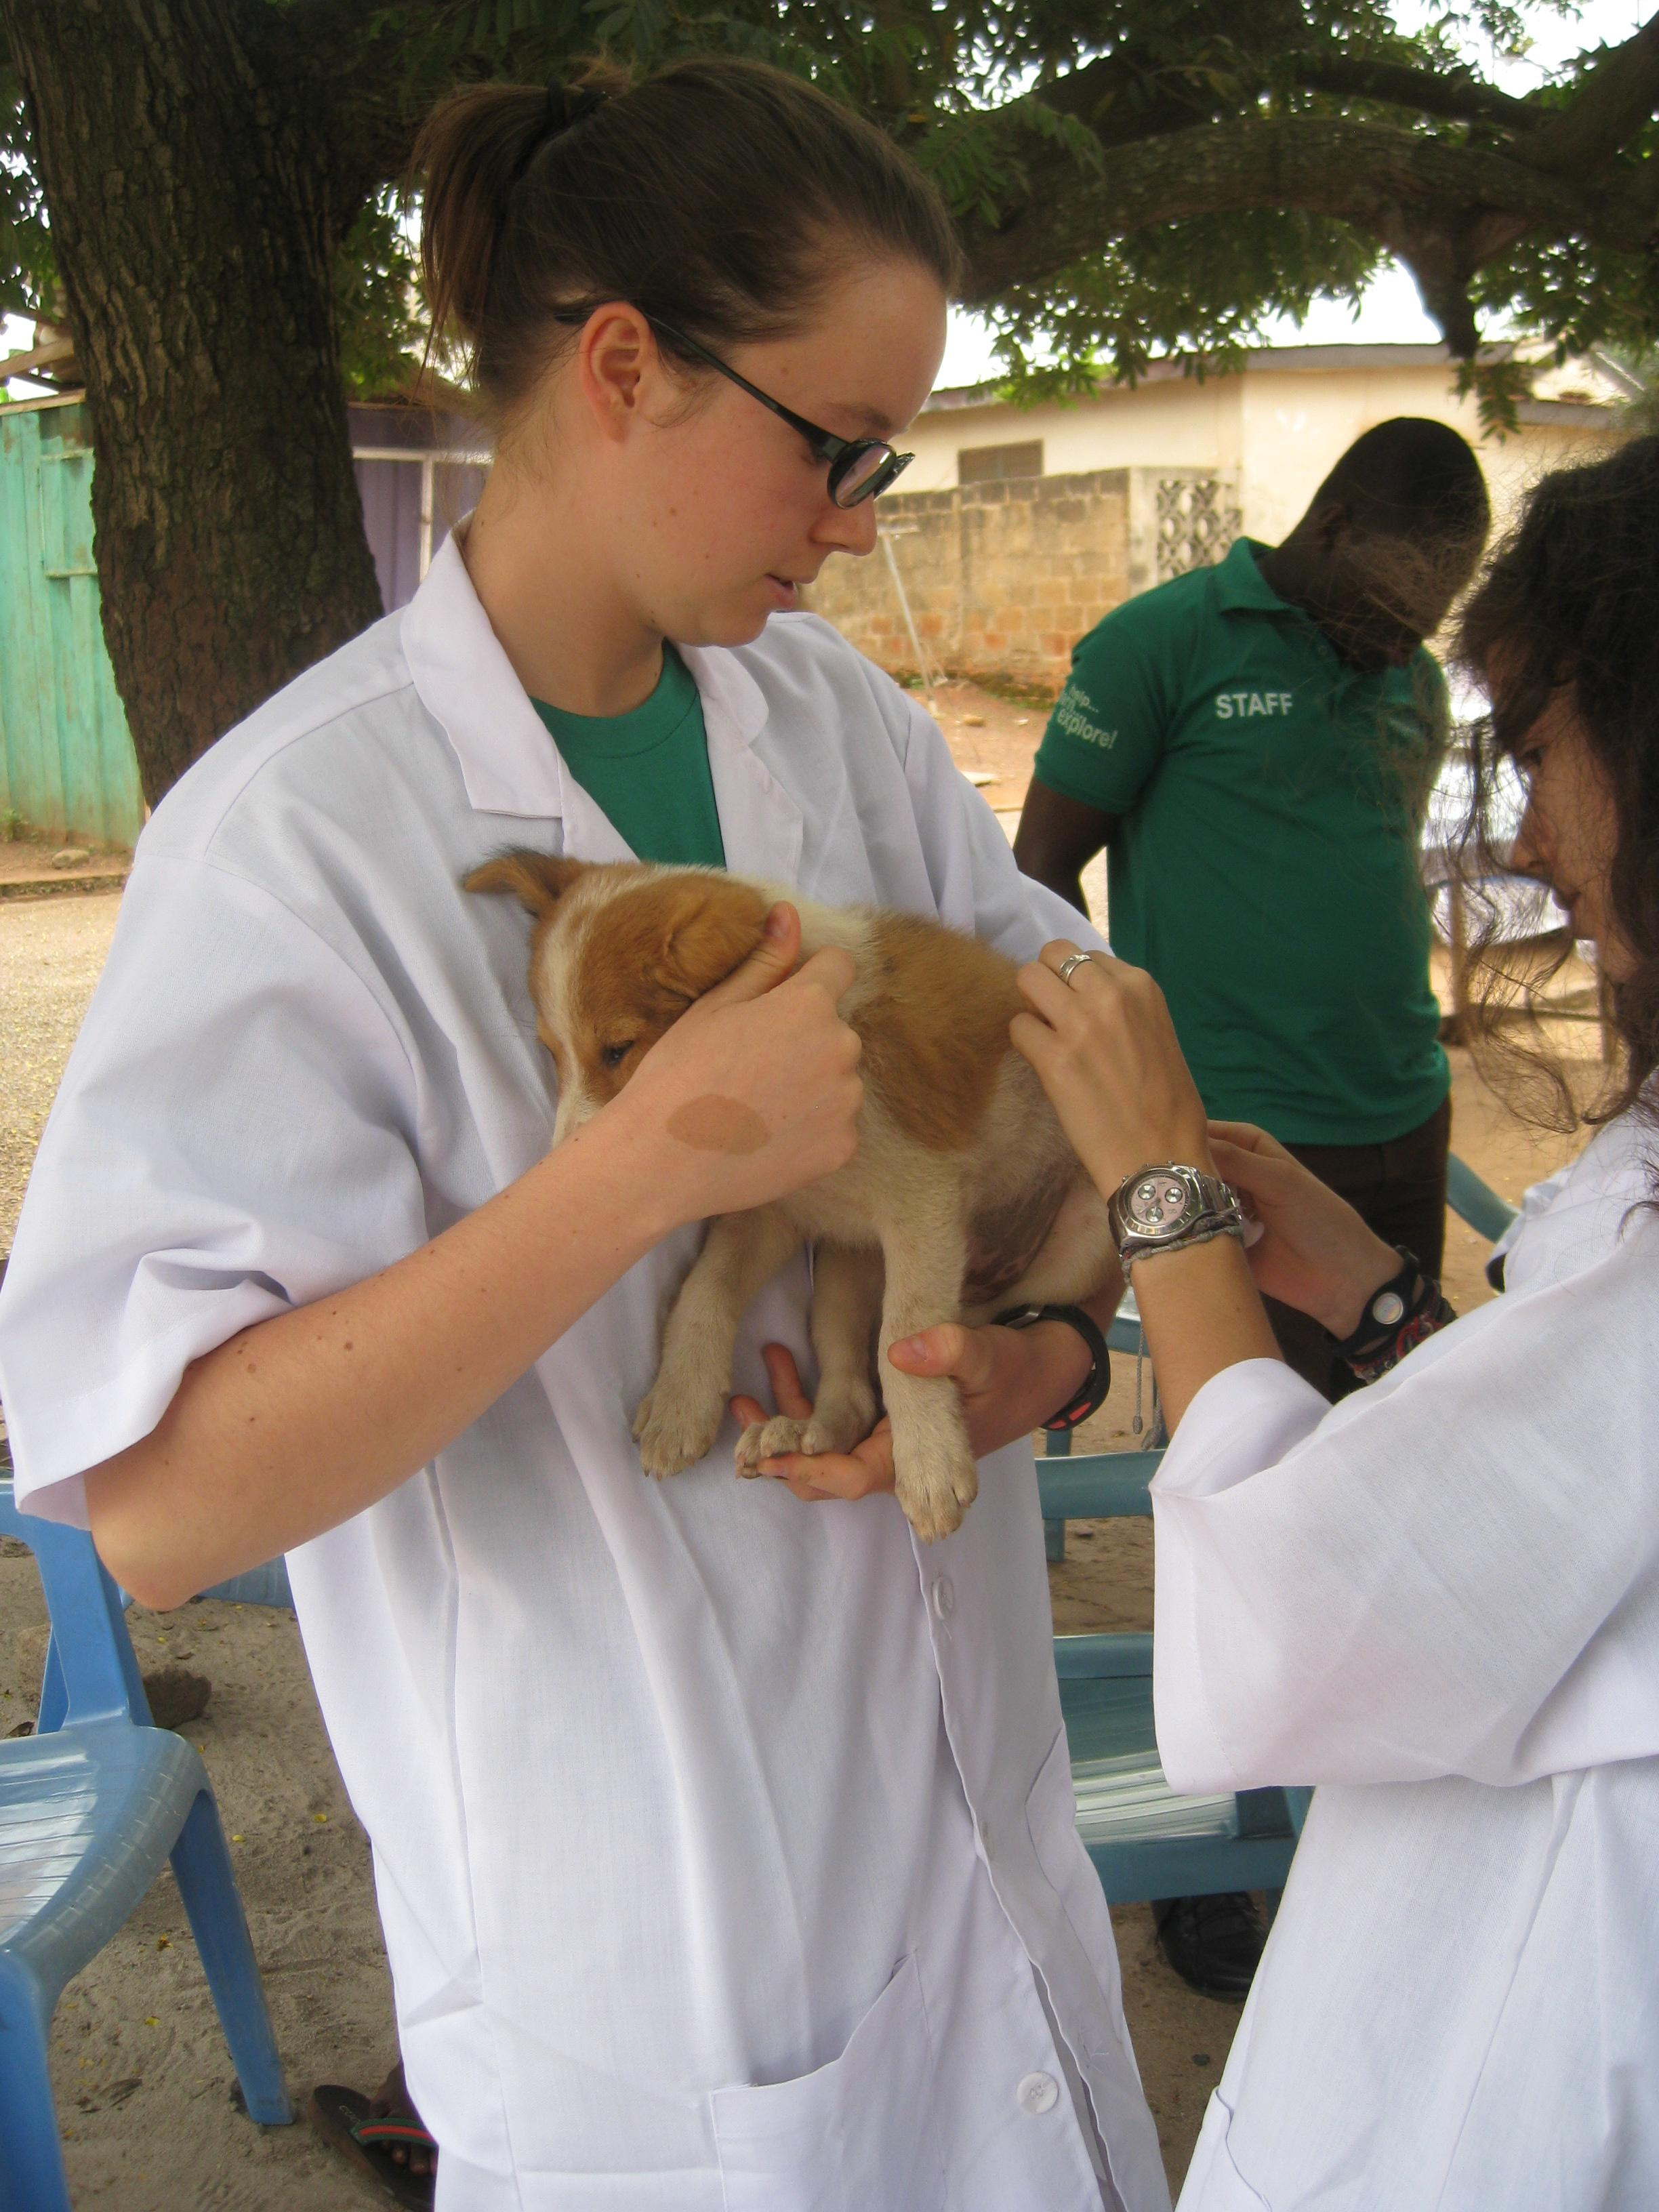 Projects Abroad volunteer holding a puppy while he gets his injections at our Veterinary Medicine placement in Ghana.